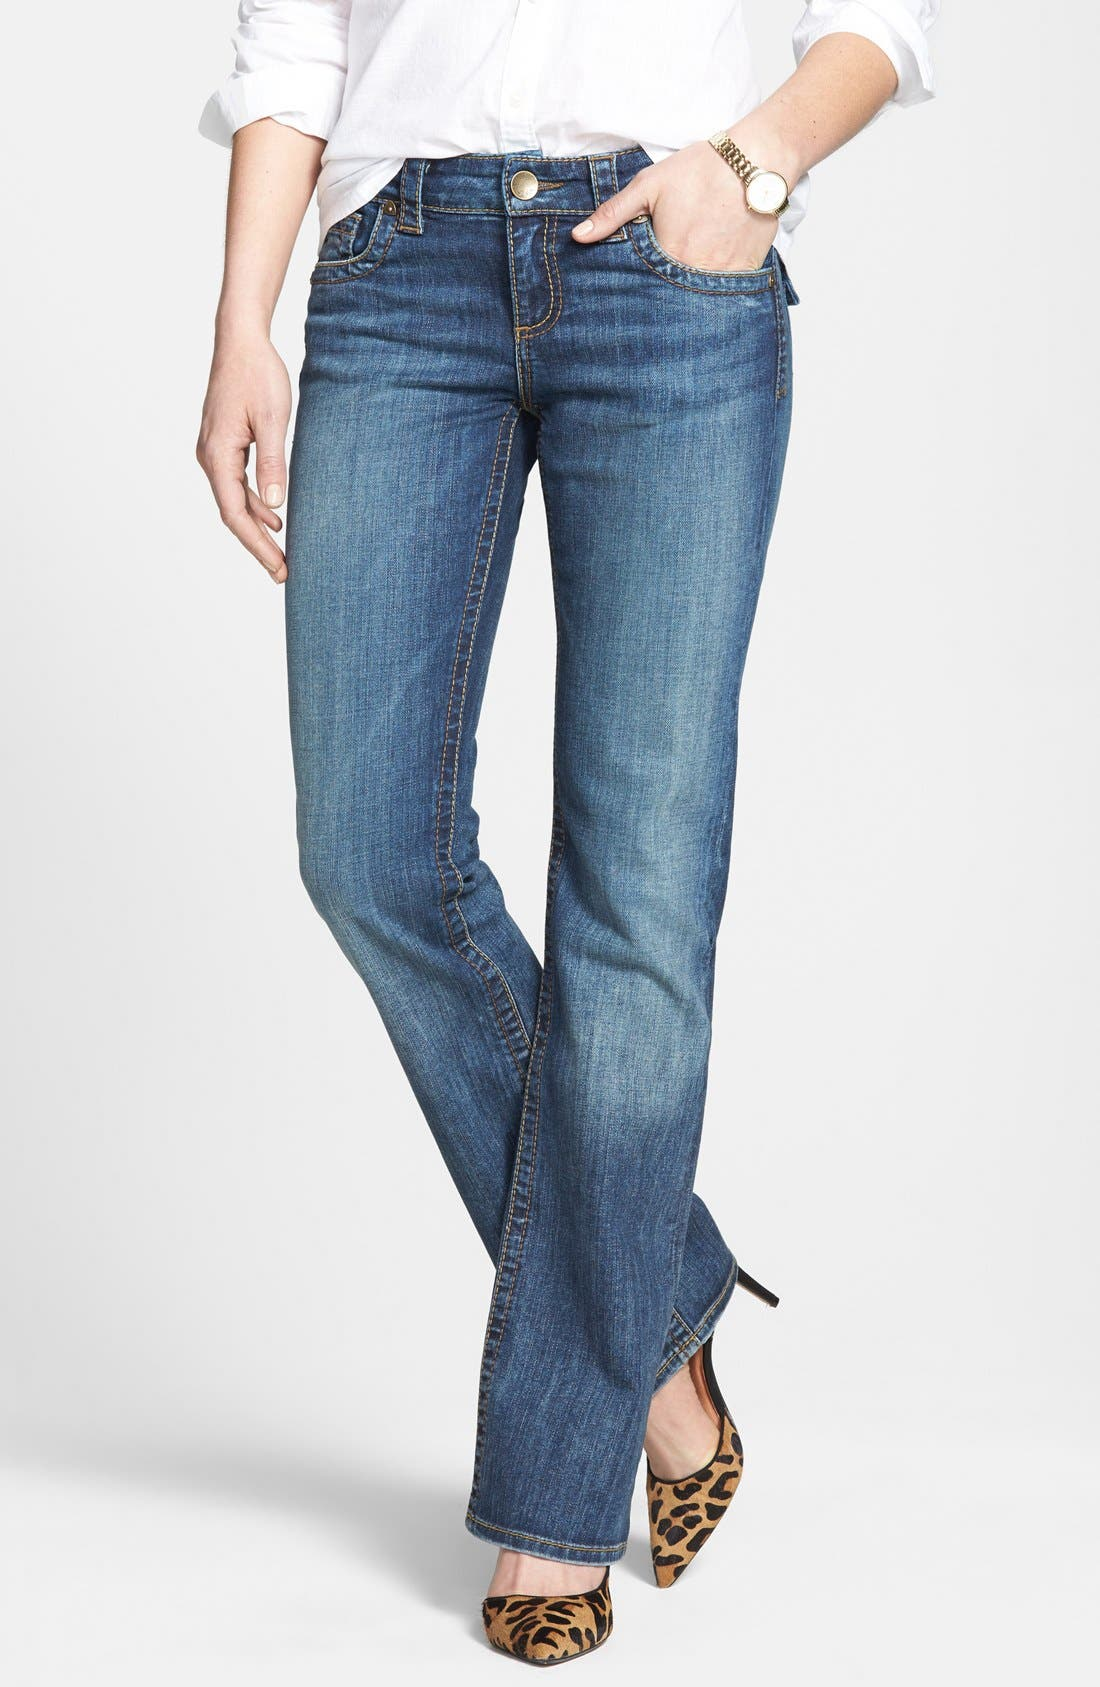 Alternate Image 1 Selected - KUT from the Kloth 'Natalie' Bootcut Jeans (Black)